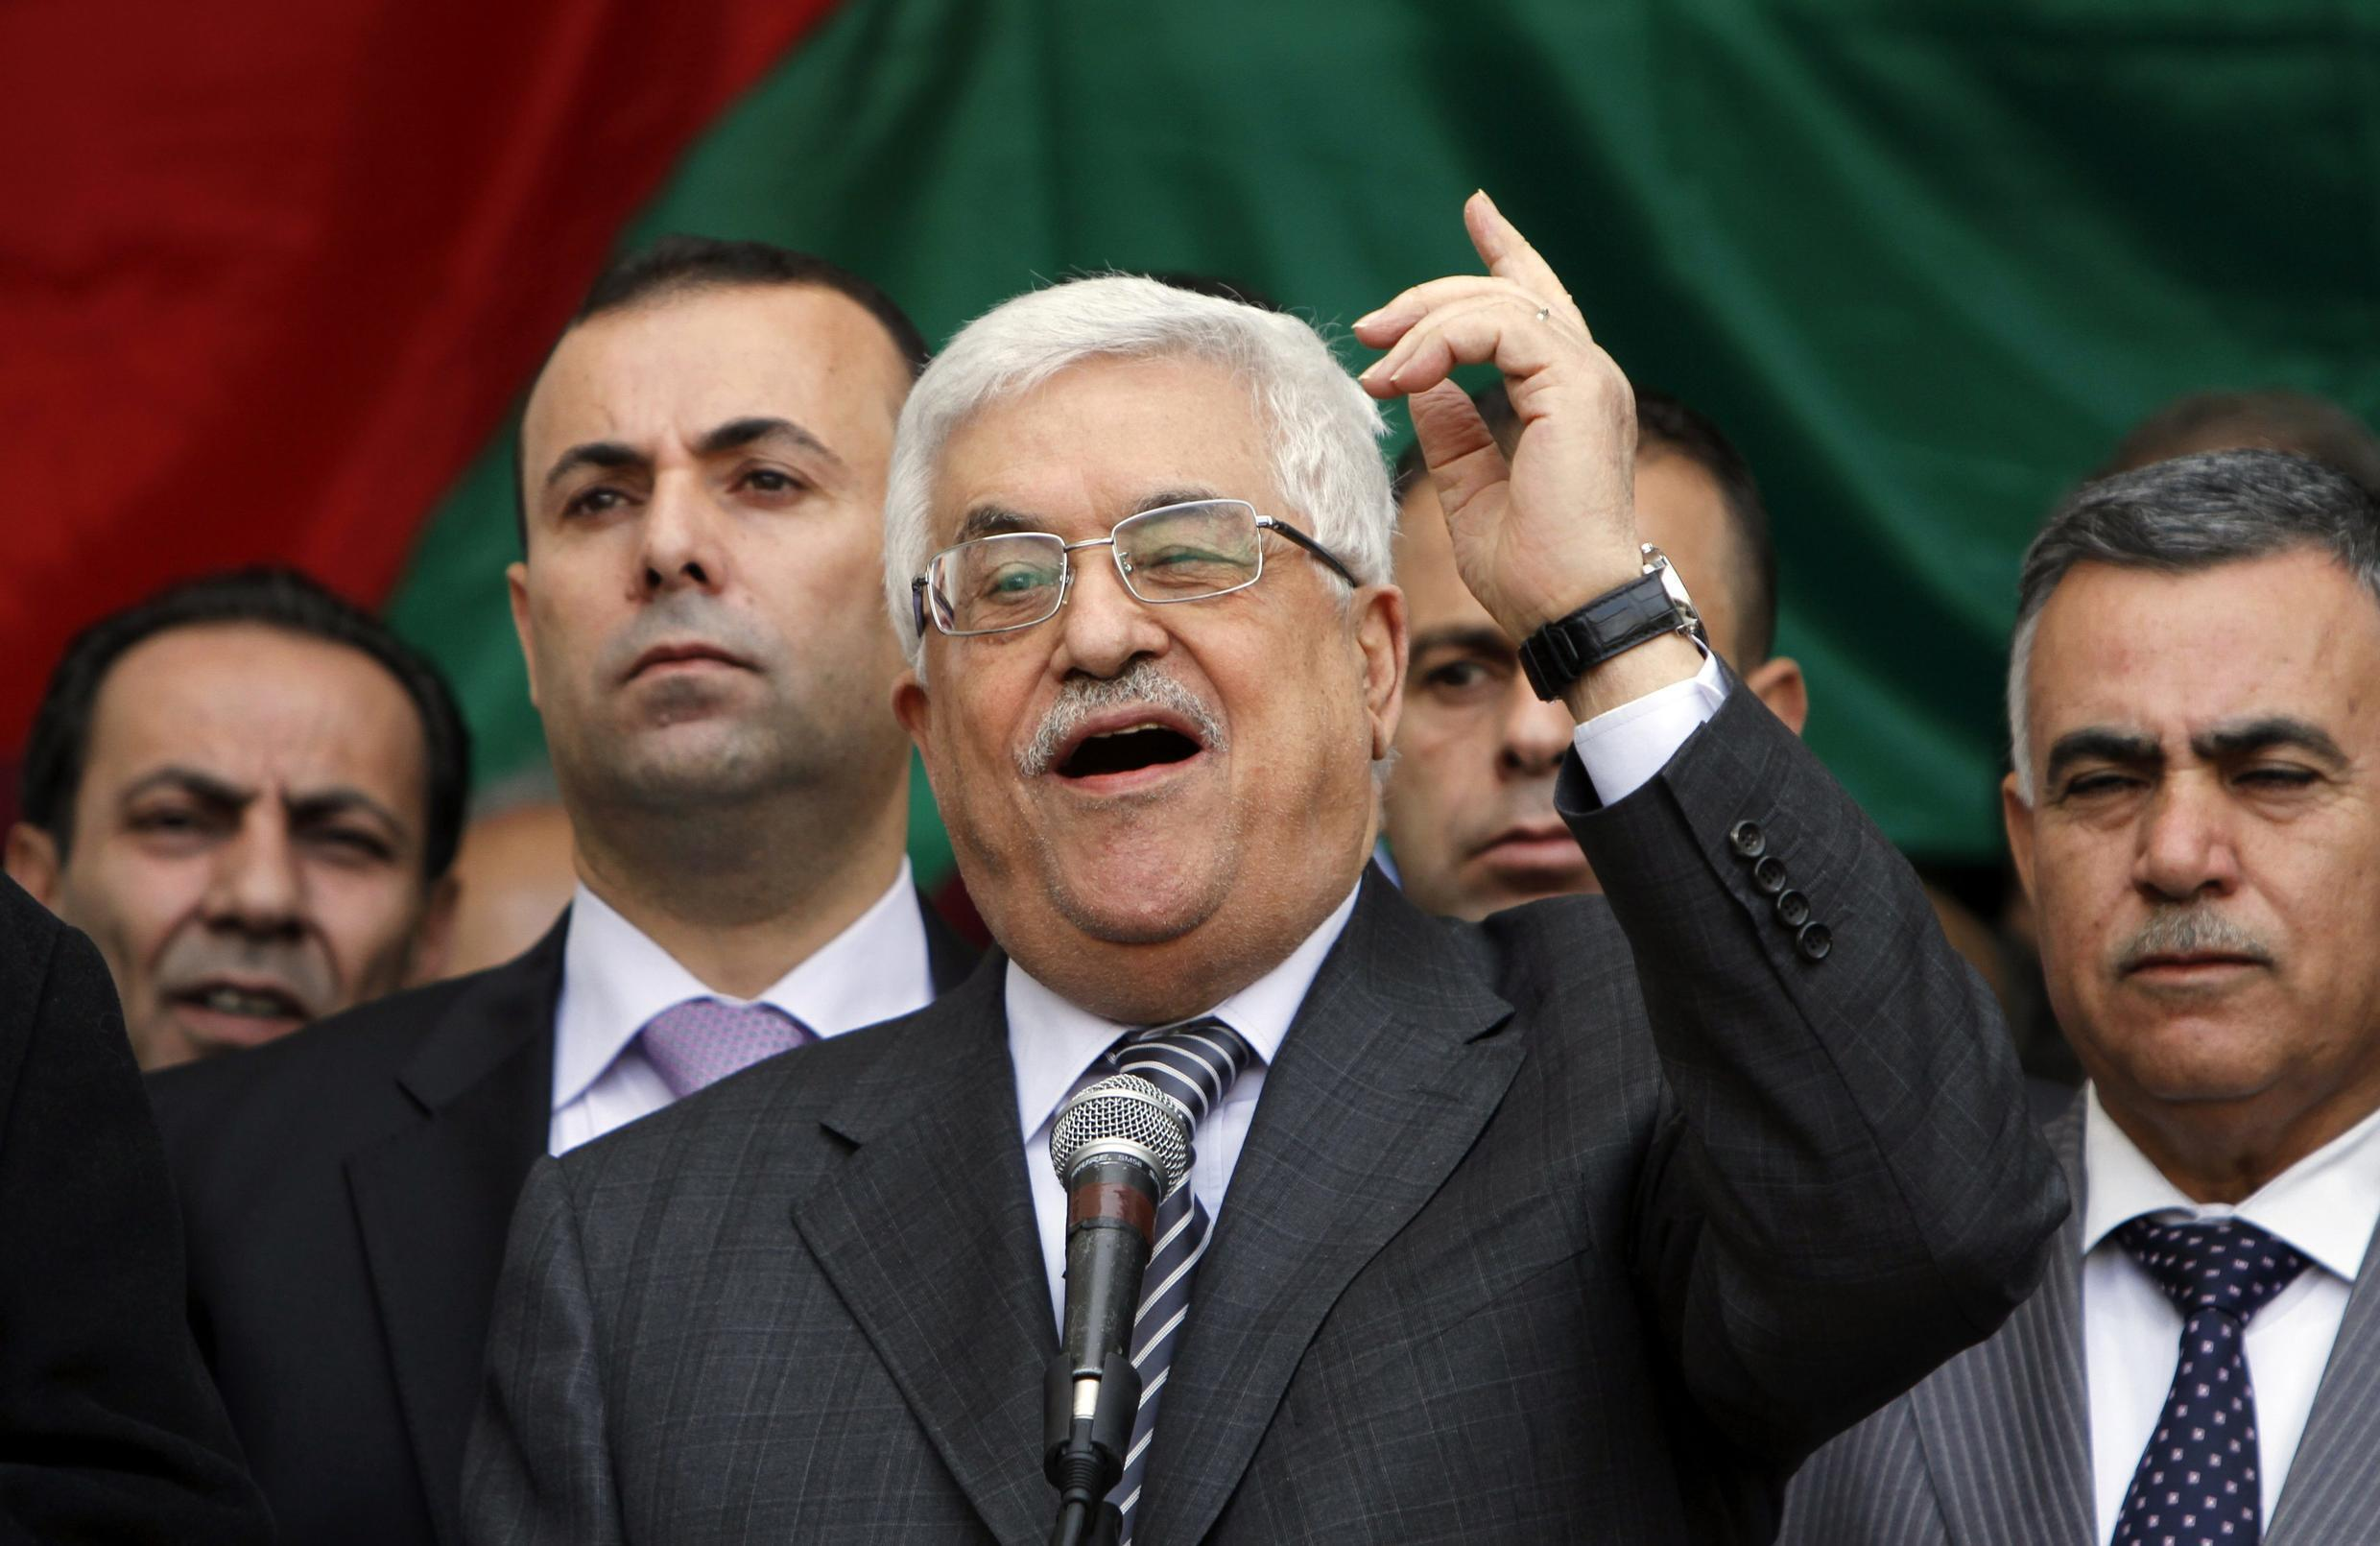 Palestinian President Mahmoud Abbas addresses the crowd during a rally in support of his efforts to secure a diplomatic upgrade at the United Nations, in the West Bank city of Ramallah